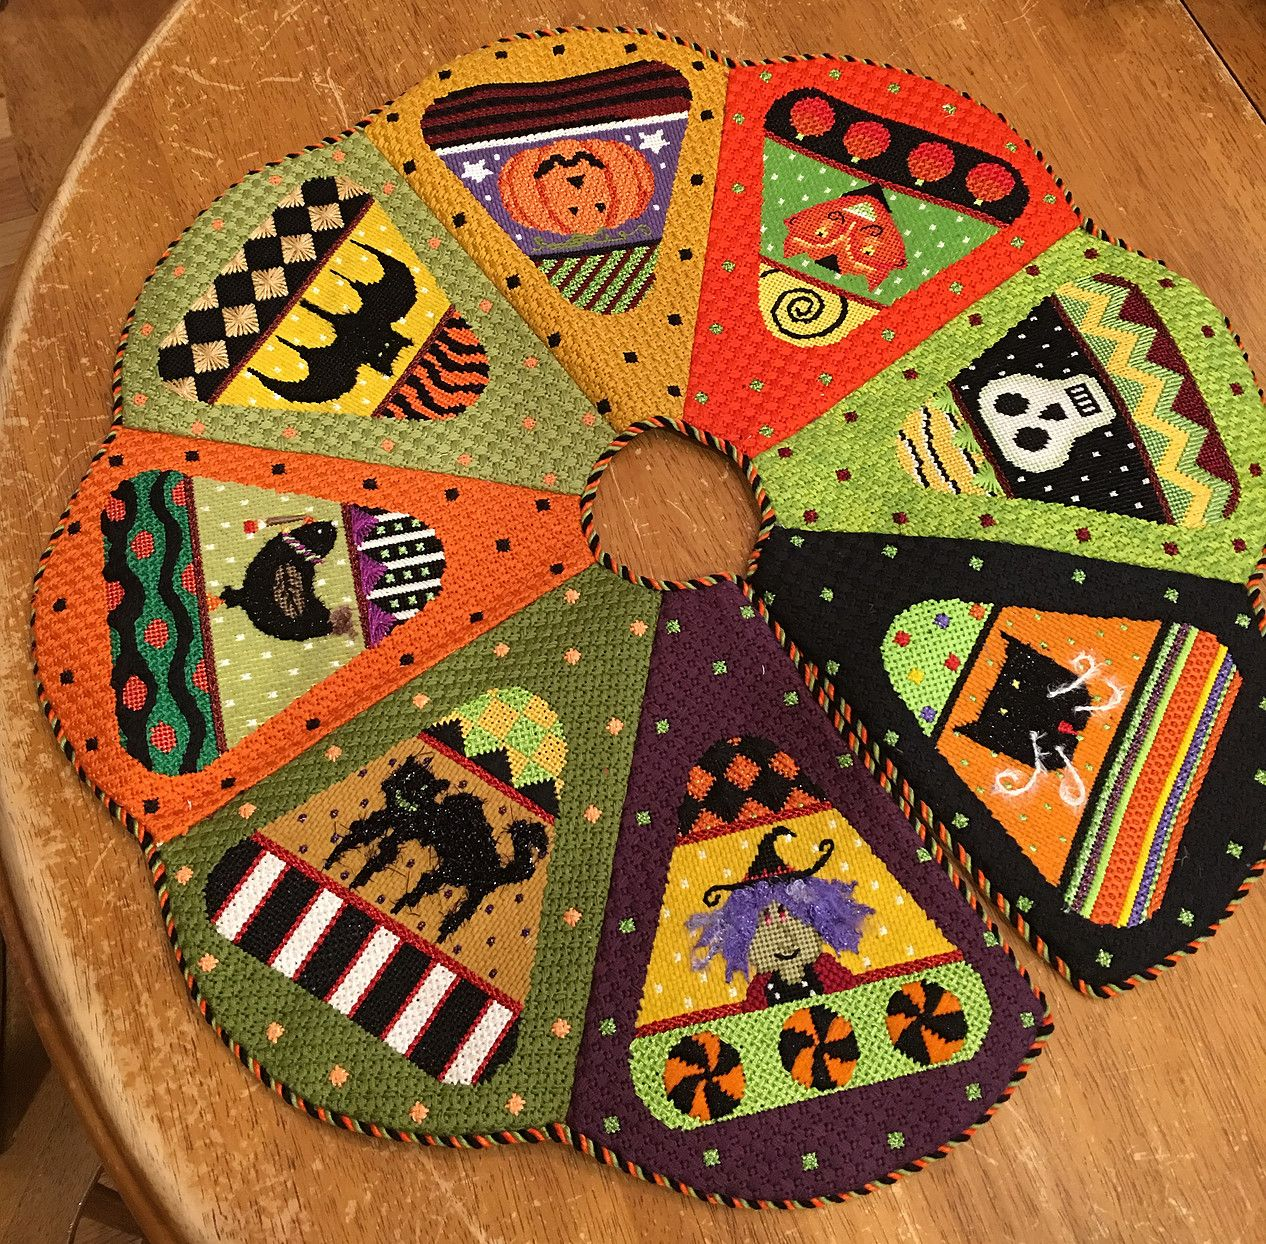 Susan S's Tree Skirt (With images) Needlepoint designs